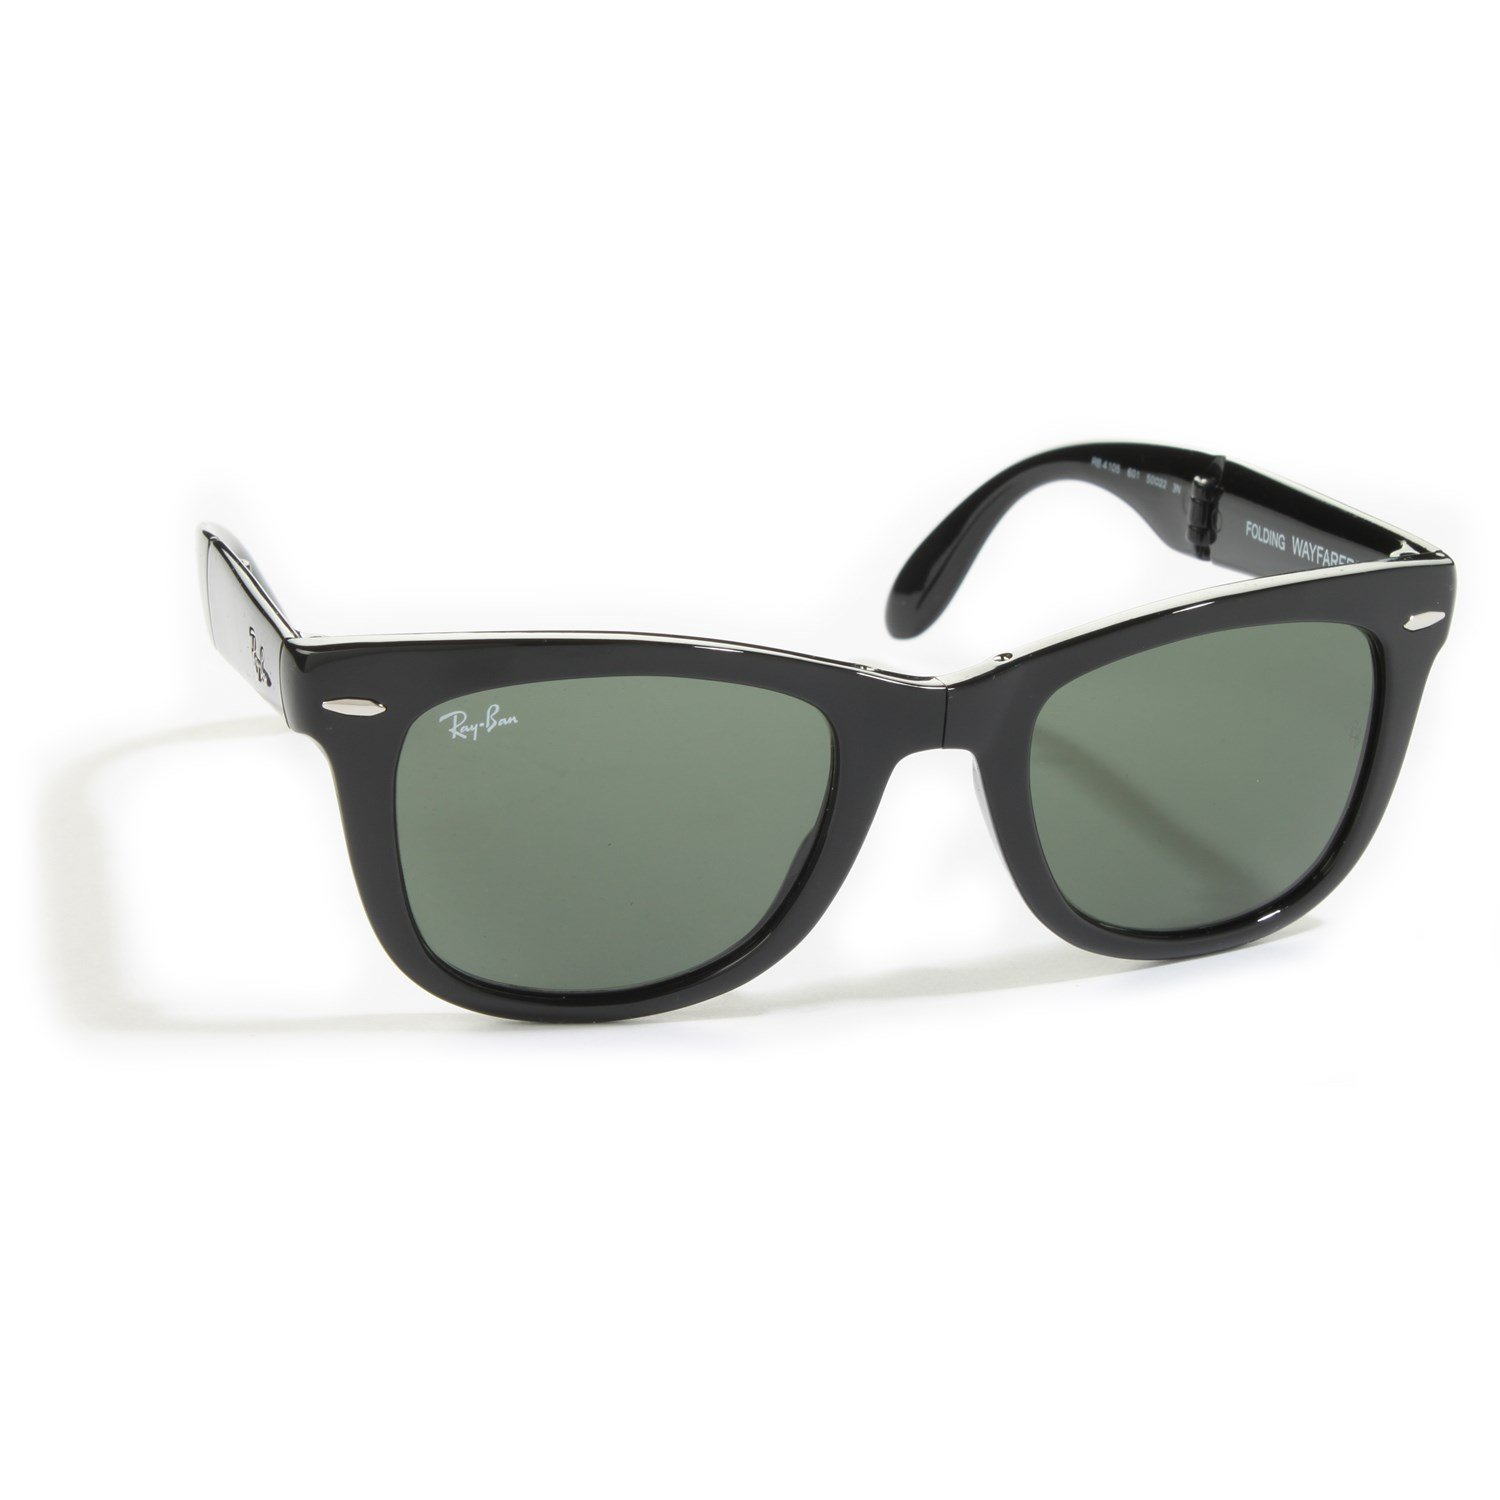 Oakley Sunglasses Warranty  oakley sunglasses warranty repair ficts